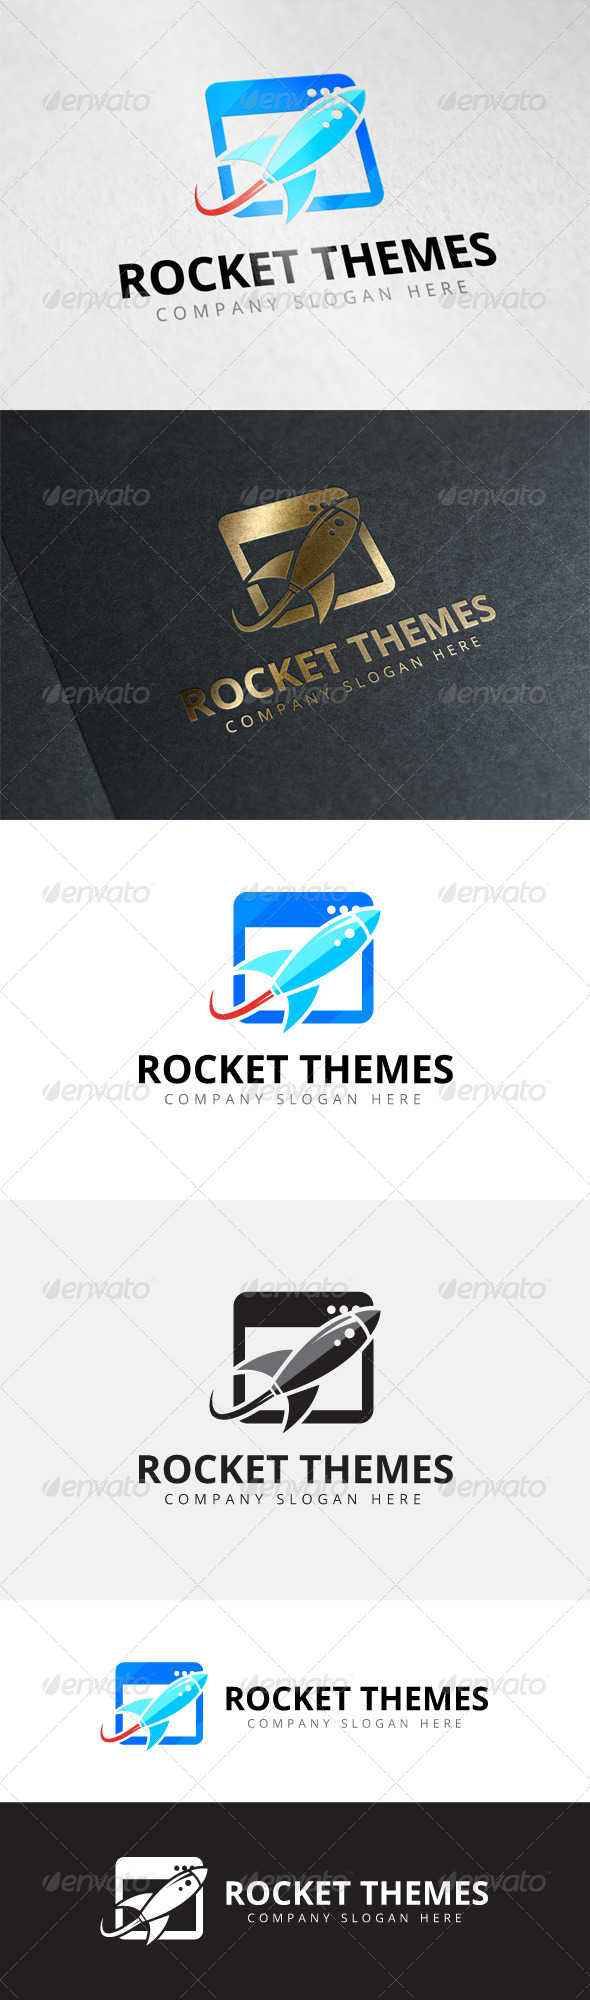 GraphicRiver Rocket Themes Logo 8060909